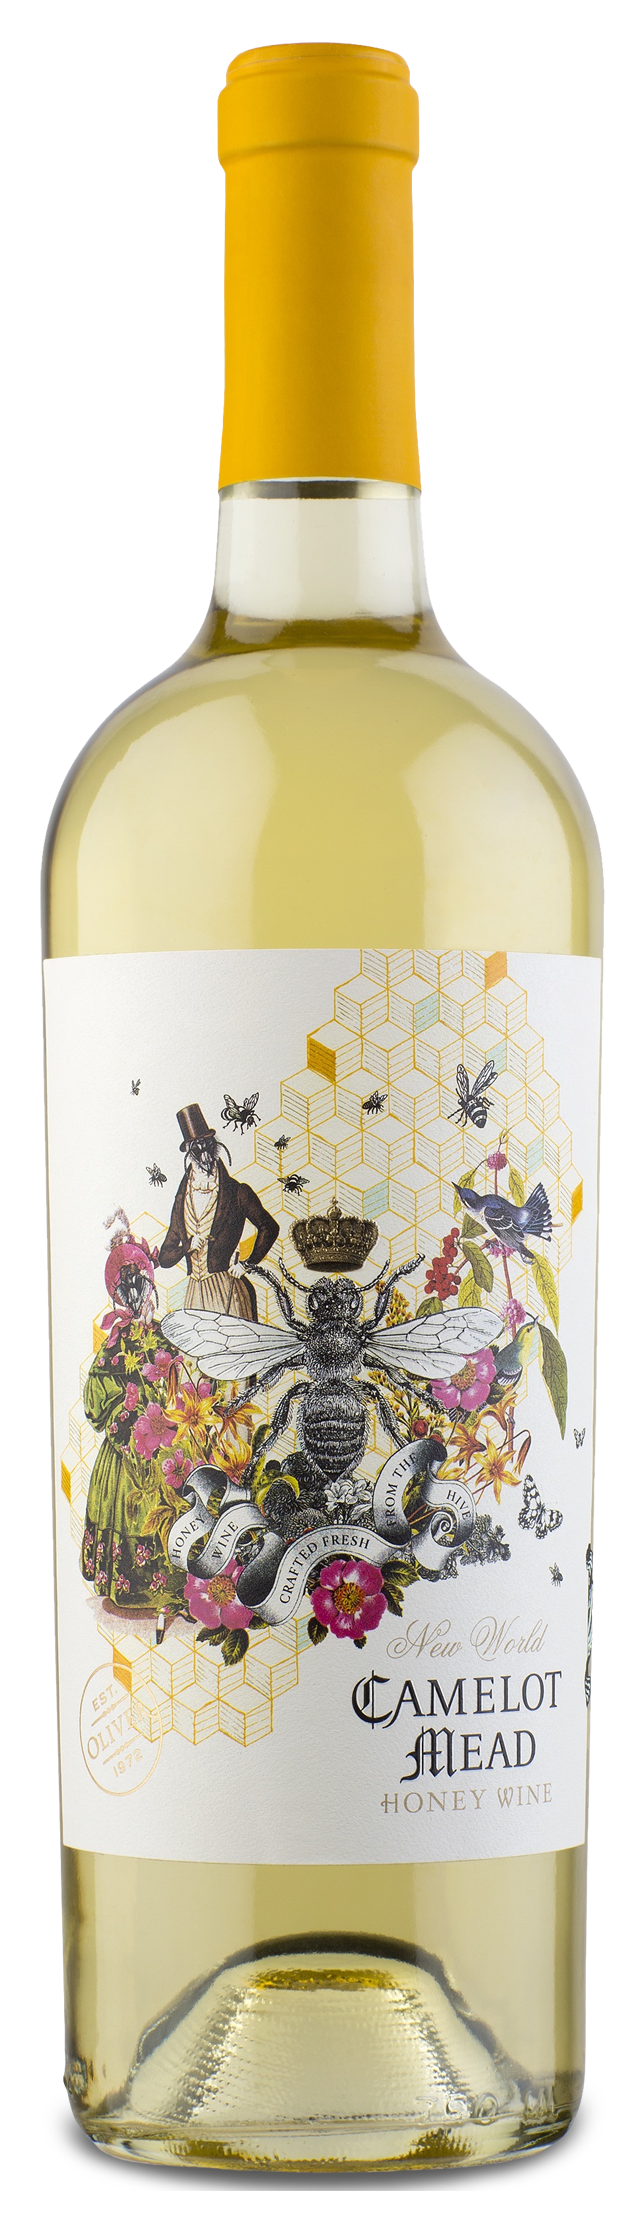 Camelot Mead (Honey Wine)